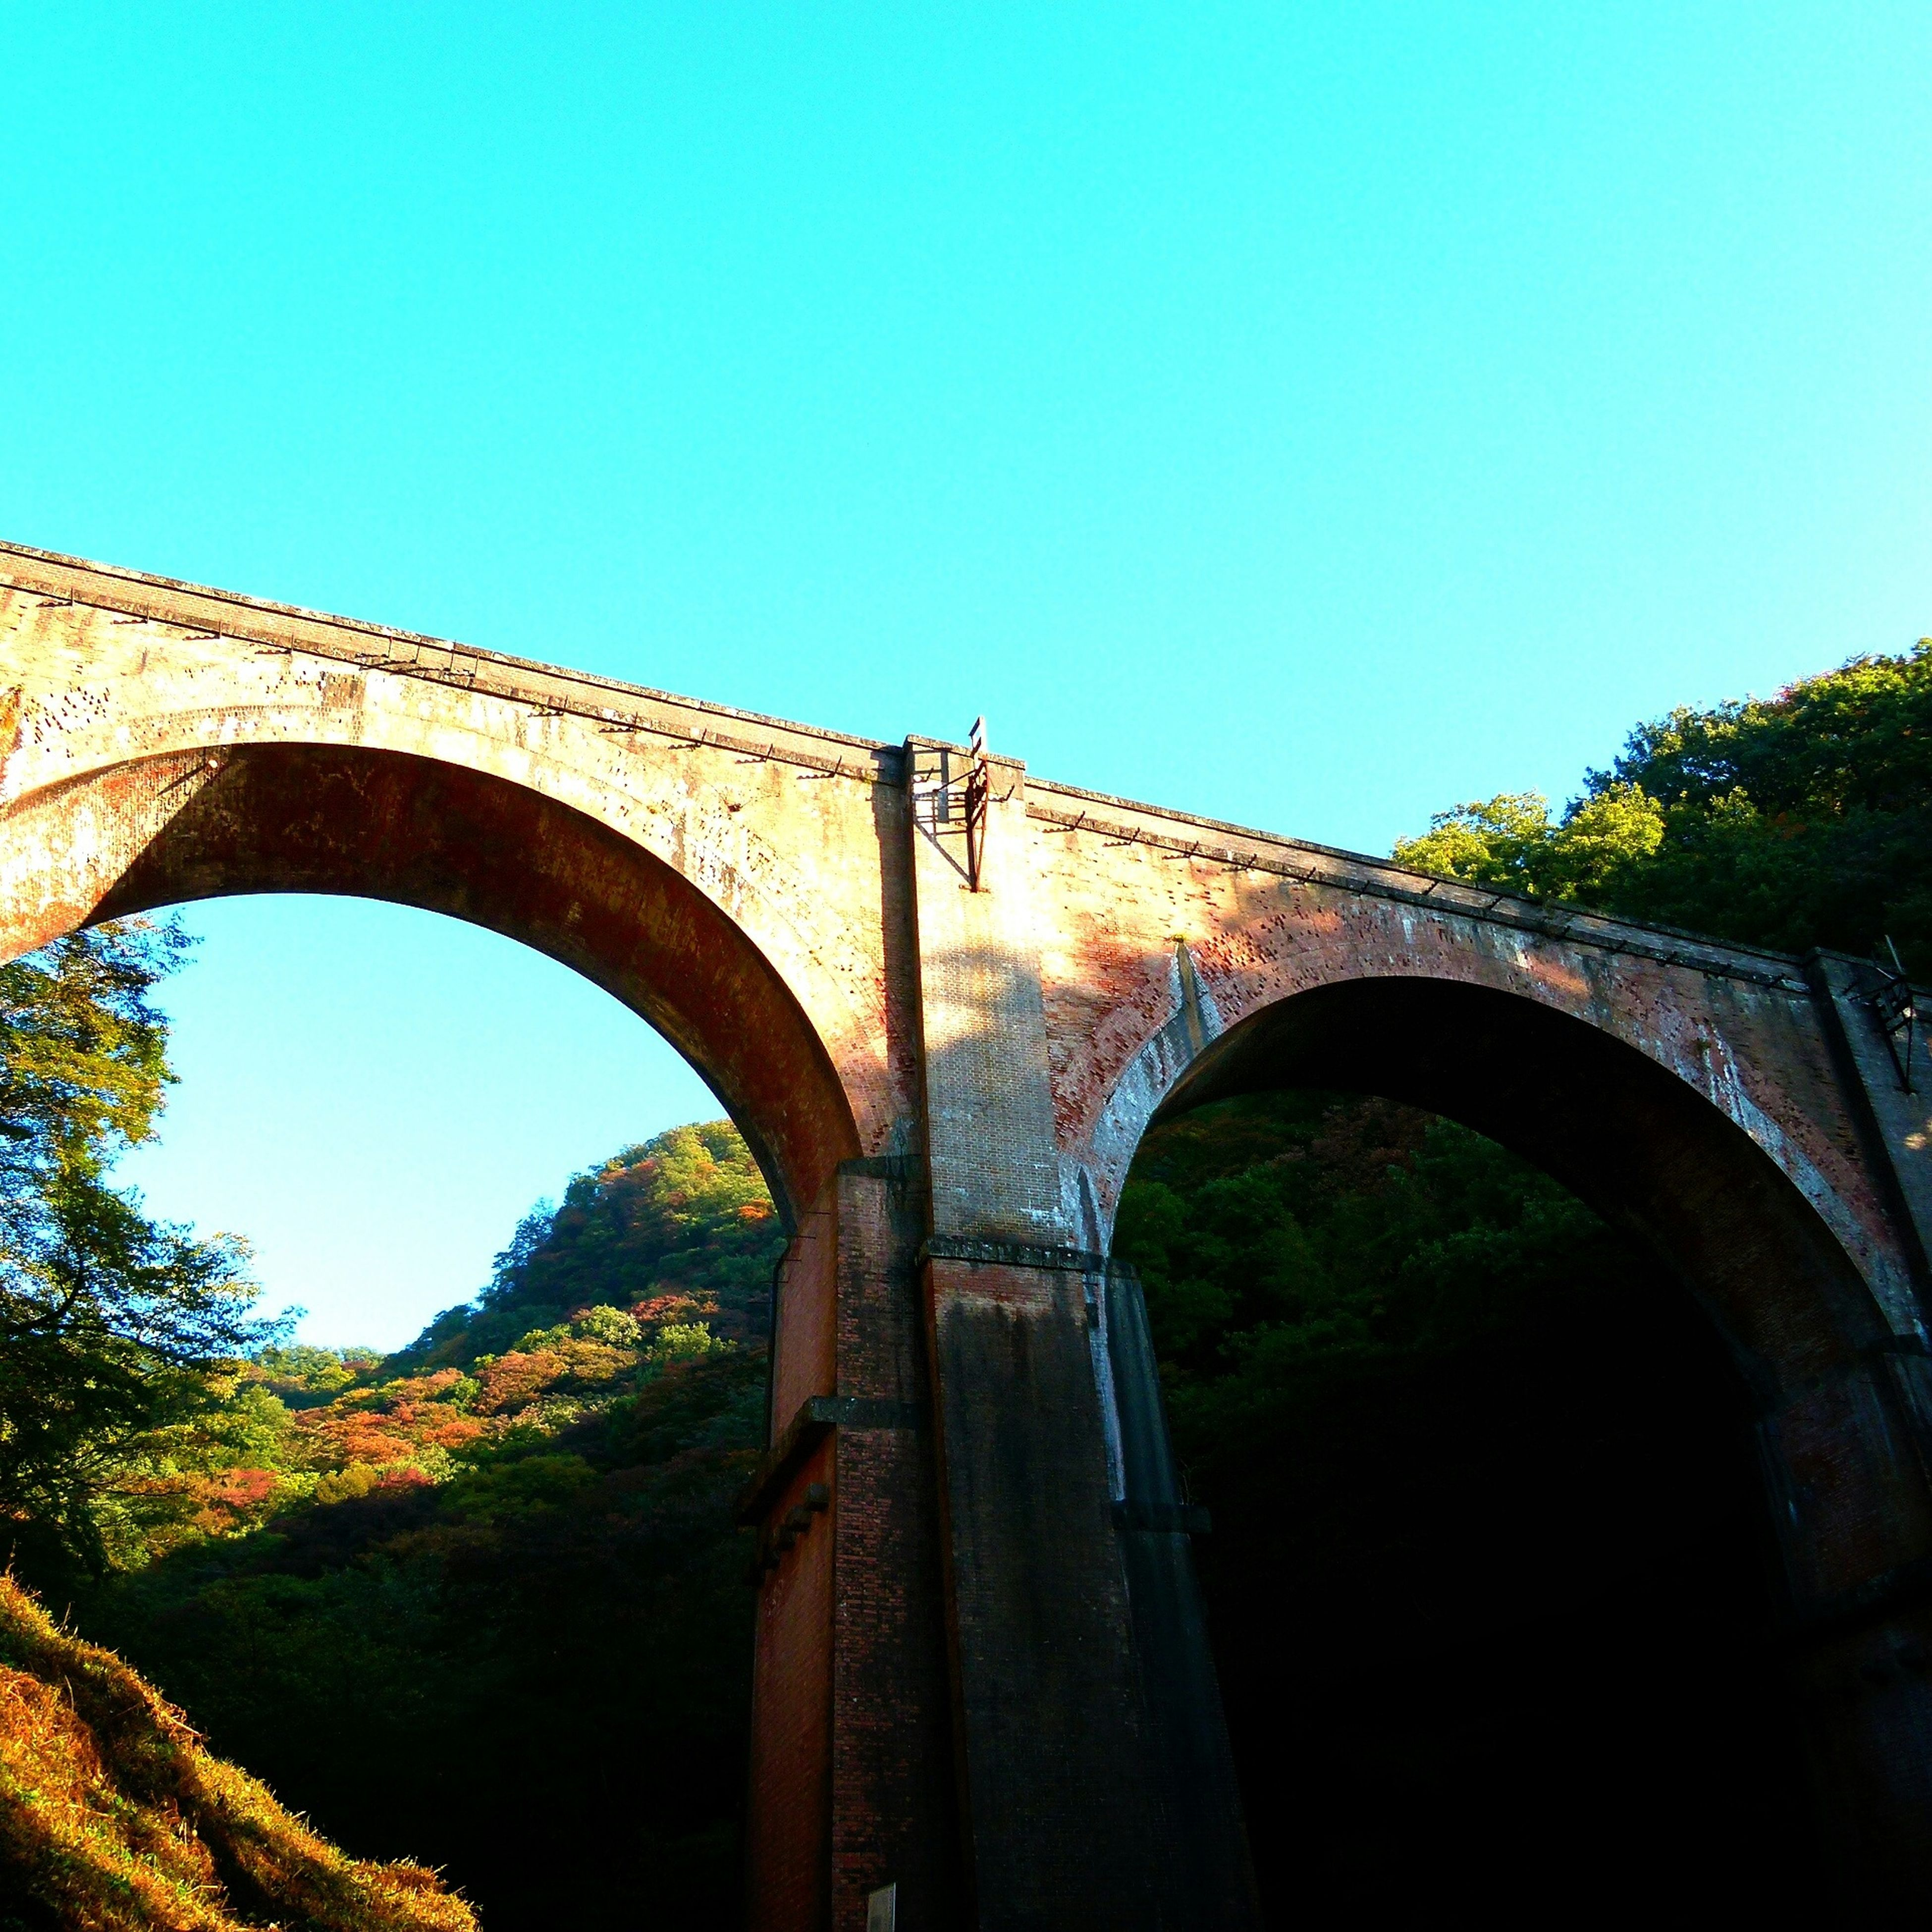 arch, architecture, built structure, clear sky, connection, bridge - man made structure, tree, low angle view, arch bridge, bridge, engineering, copy space, building exterior, blue, transportation, outdoors, arched, archway, day, no people